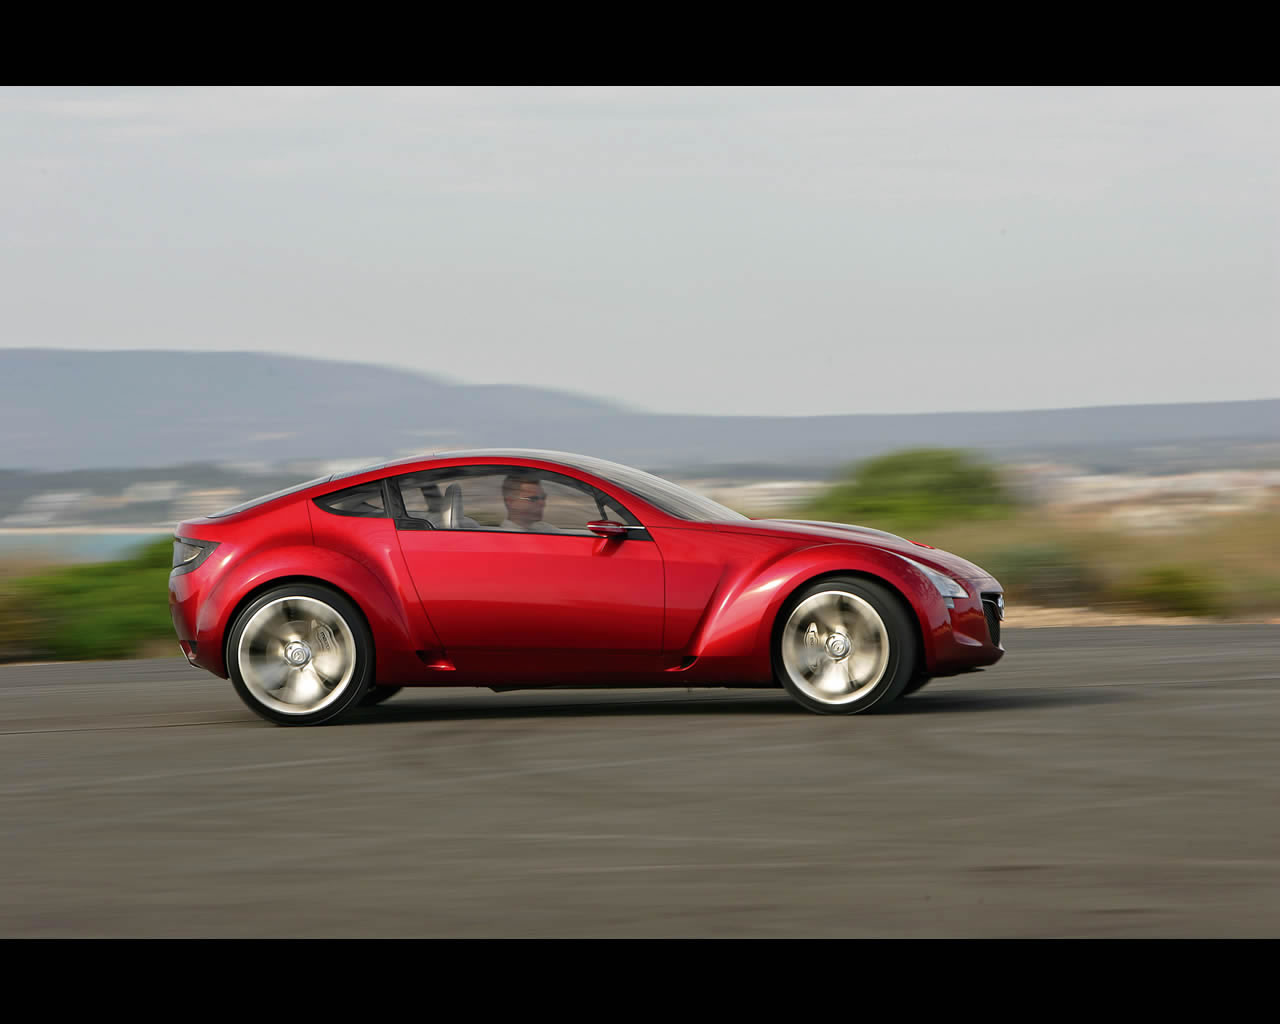 http://autoconcept-reviews.com/cars_reviews/mazda/mazda-kabura/wallpaper/Mazda_Kabura_2006_driving02_print.jpg